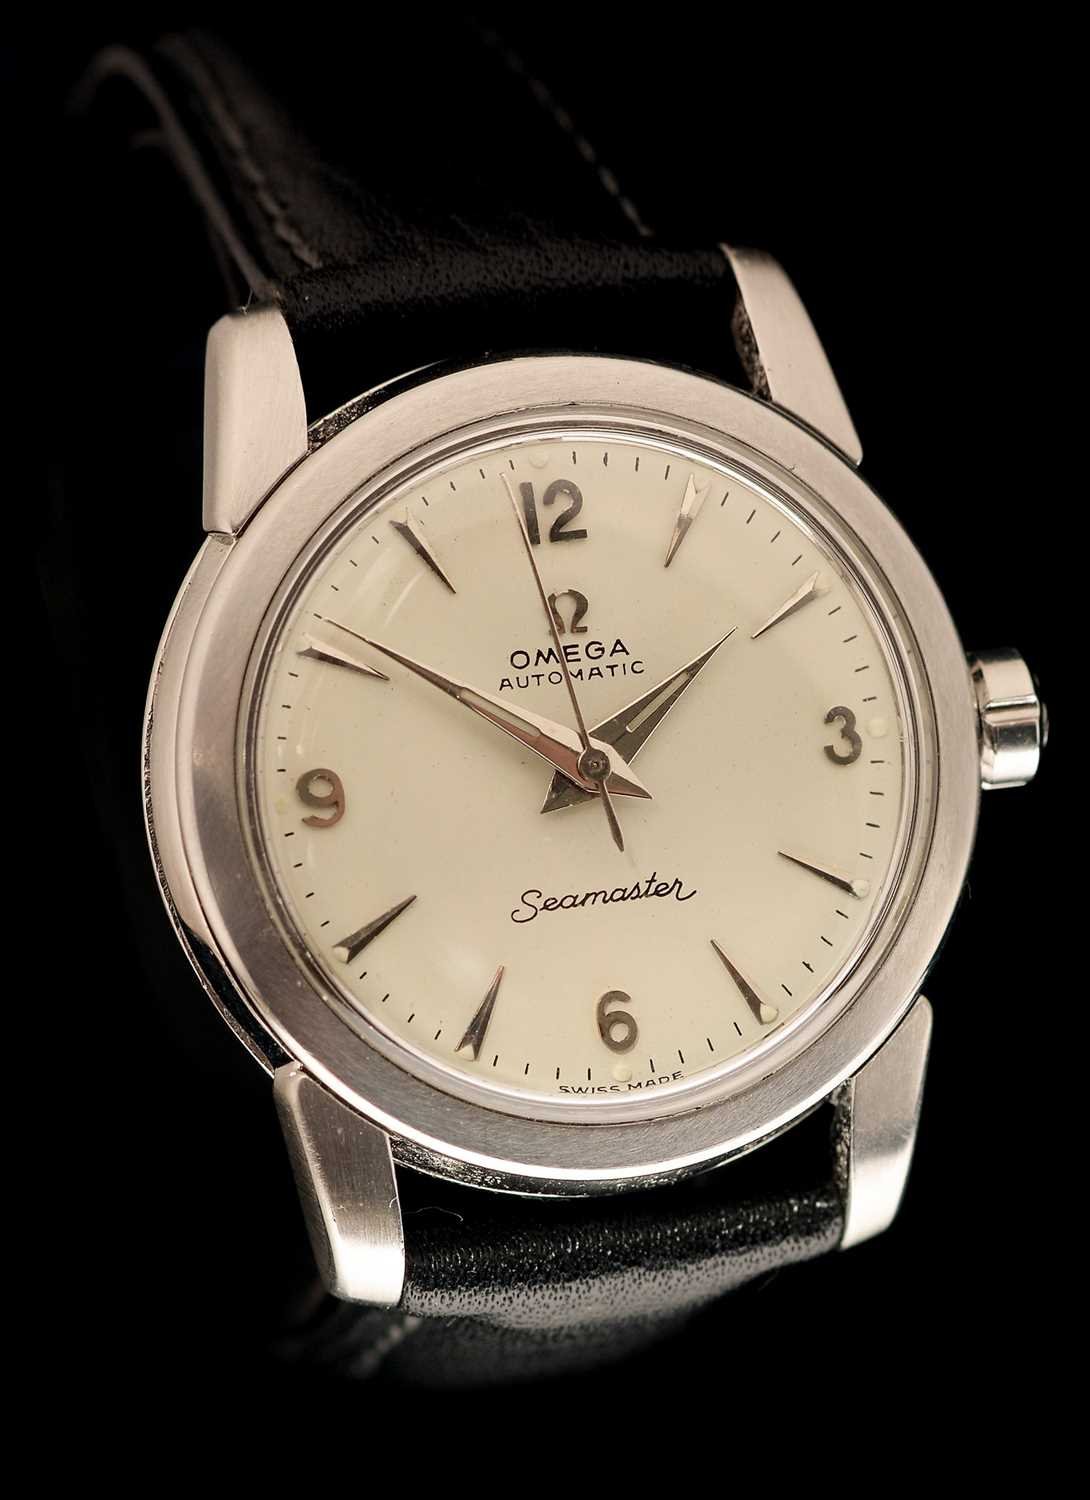 Lot 11-Omega Seamaster wristwatch.